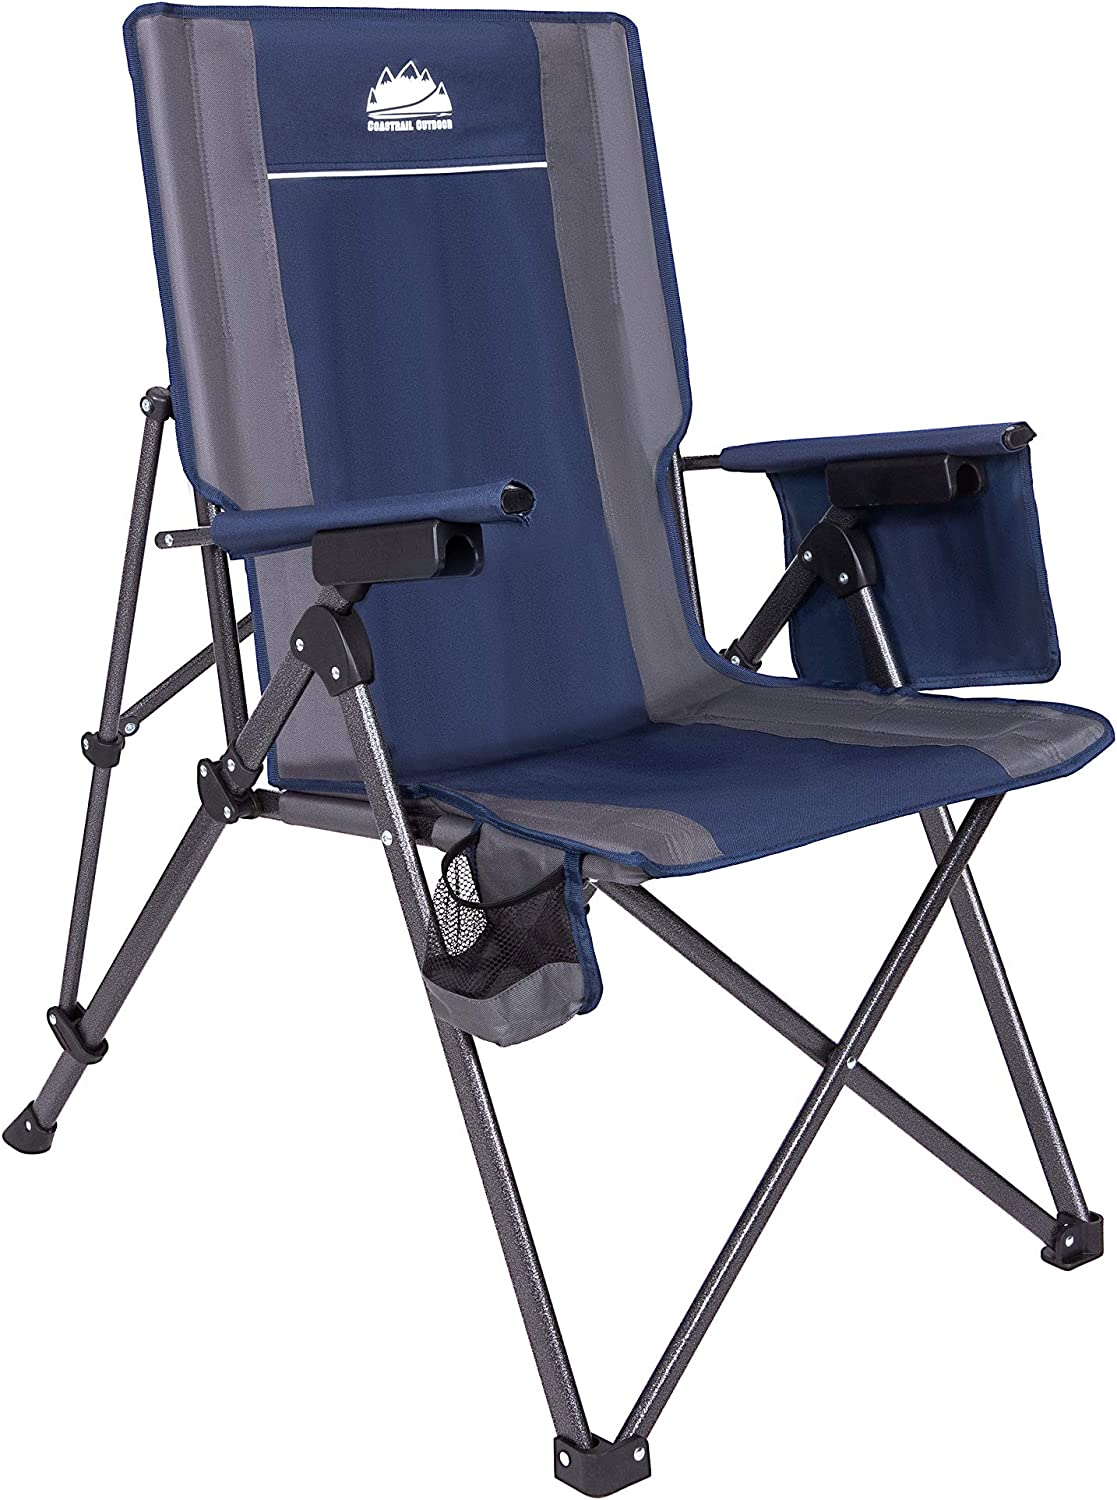 Mesa Mall Coastrail Outdoor Reclining Camping El Paso Mall Adjustable Chairs 3 Position